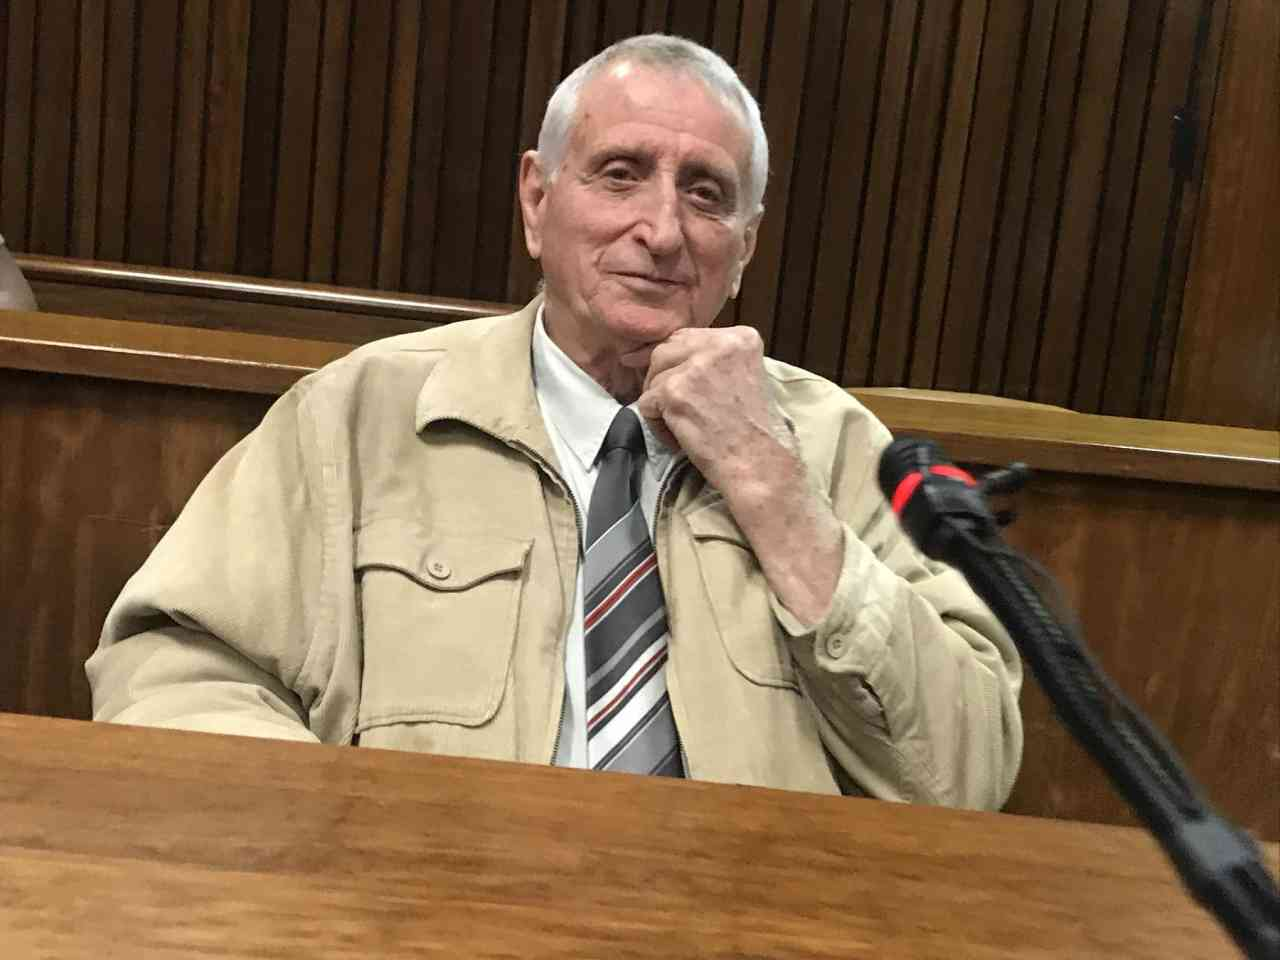 Apartheid-era police officer in South Africa to face trial over 1971 murder